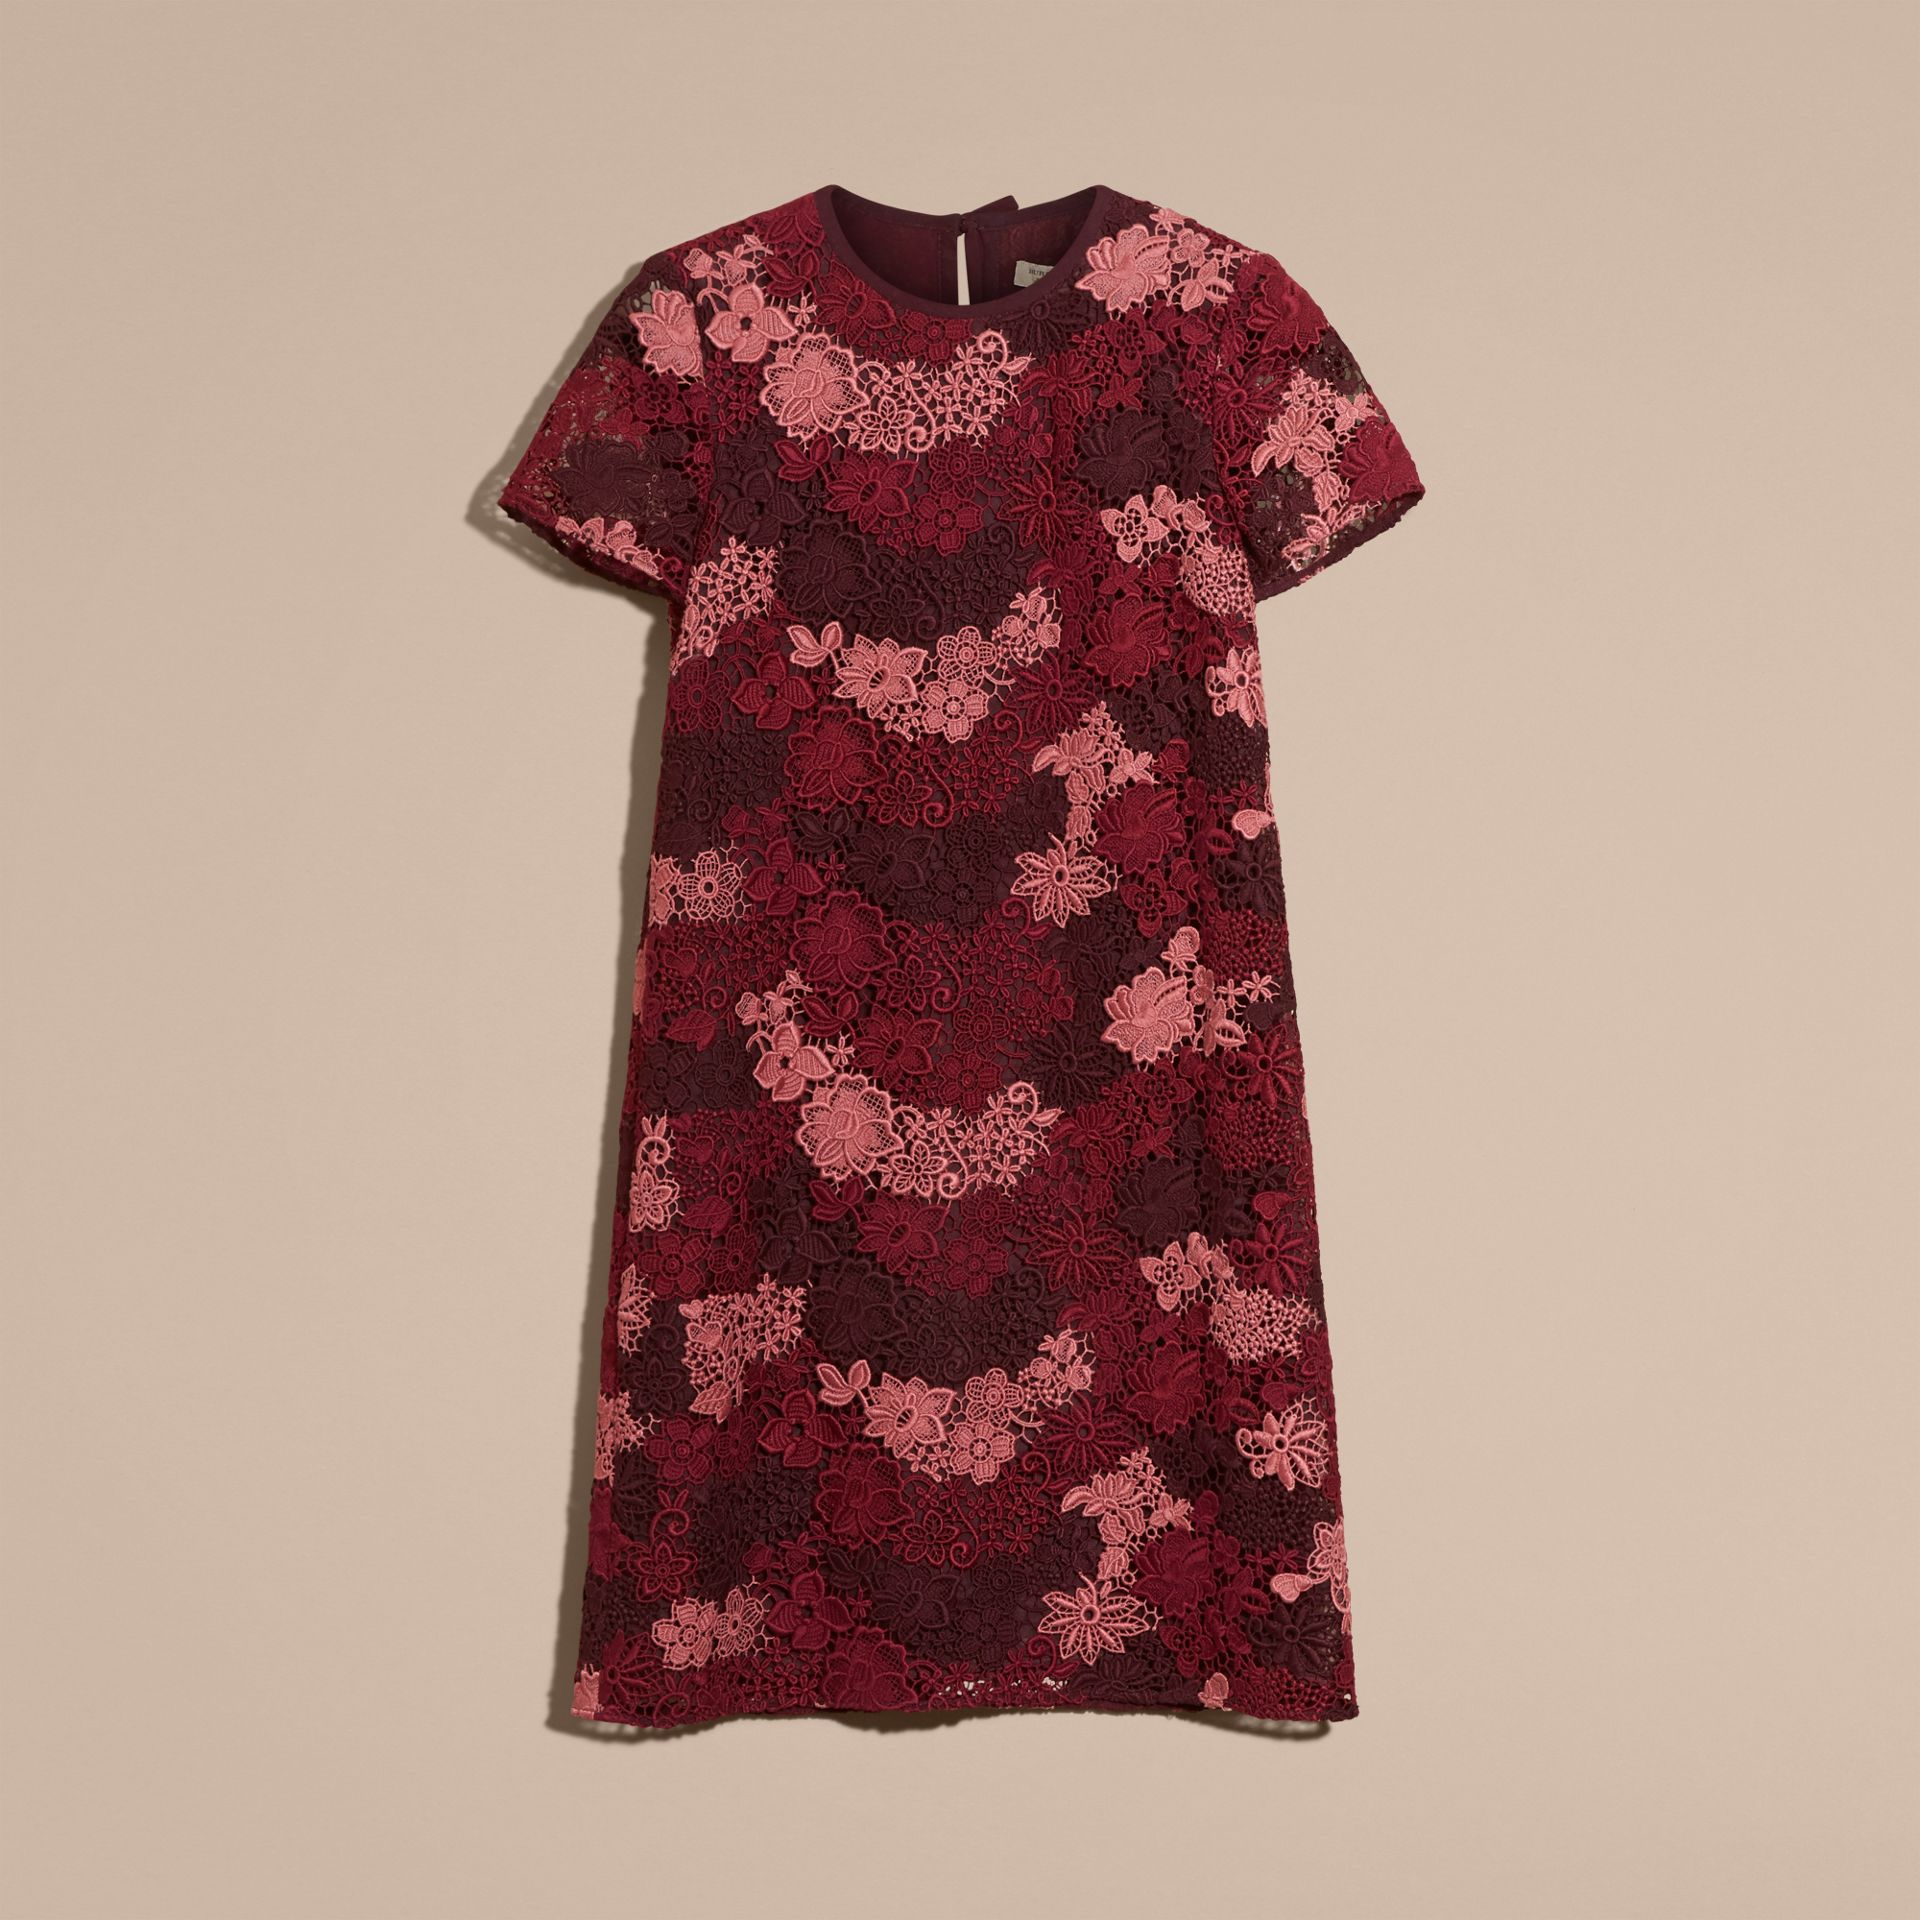 Deep claret Italian-woven Lace T-shirt Dress Deep Claret - gallery image 4